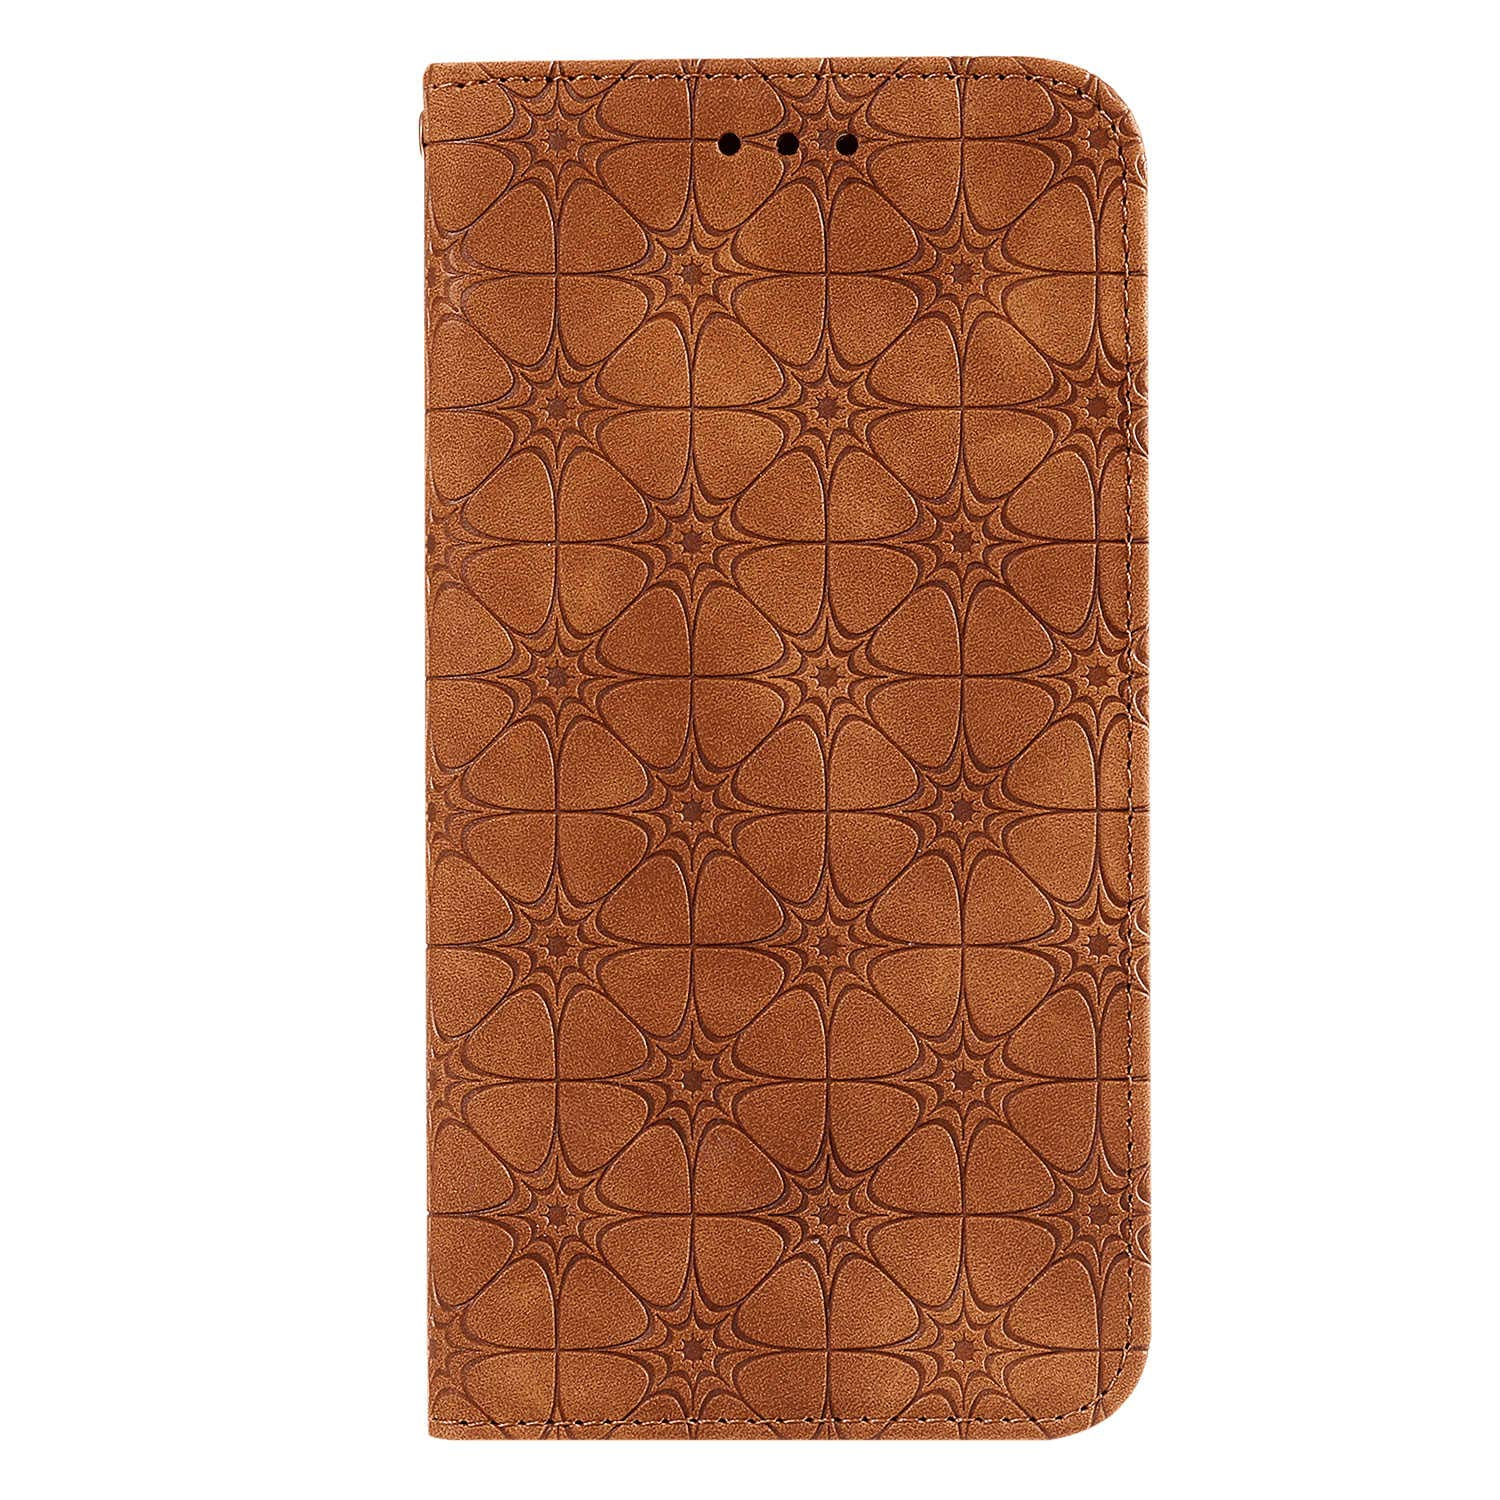 Flip Case for Samsung Galaxy S10 Plus S10+, Brown PU Leather Wallet Cover (Compatible with Samsung Galaxy S10 Plus S10+)